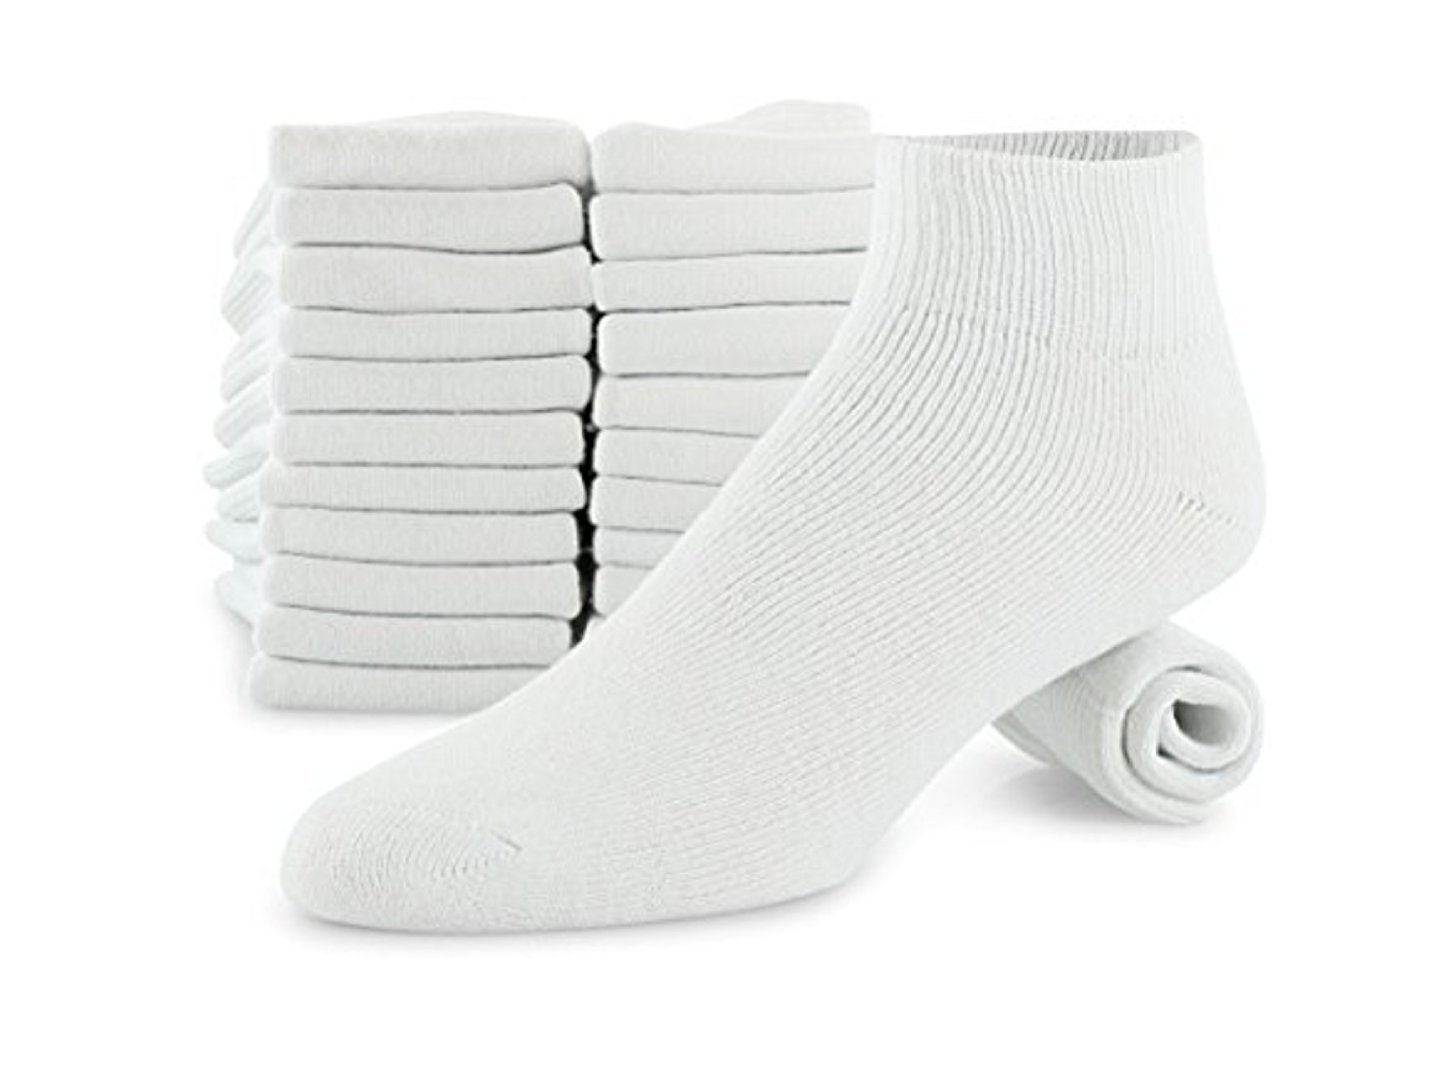 Men's 12-pack Big & Tall Cotton Quarter Cushioned sock fits size 12-14.5